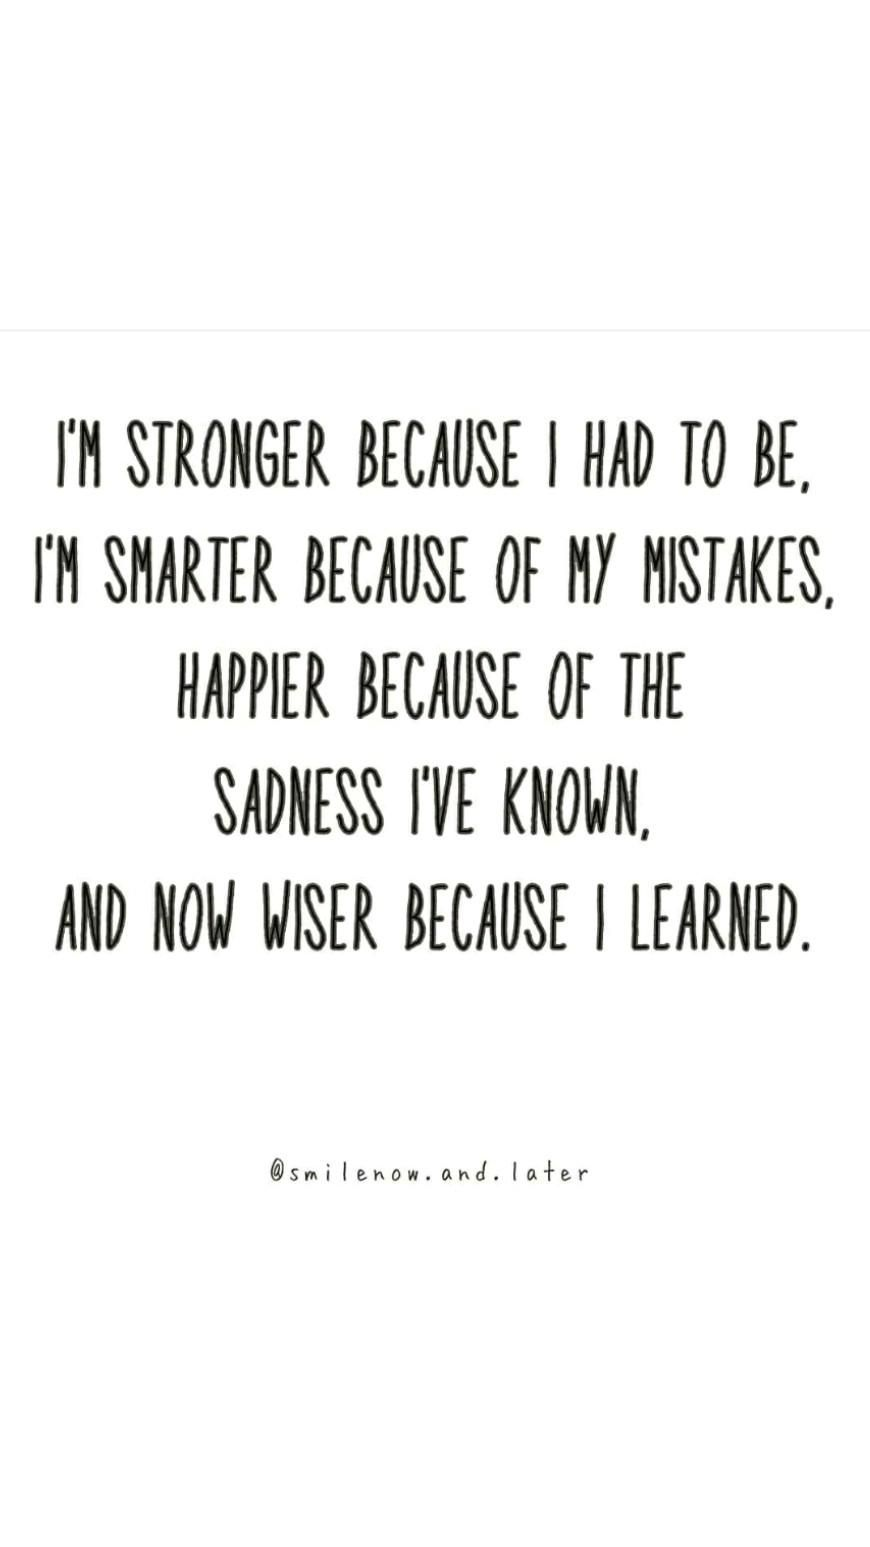 I'm stronger because I had to be.